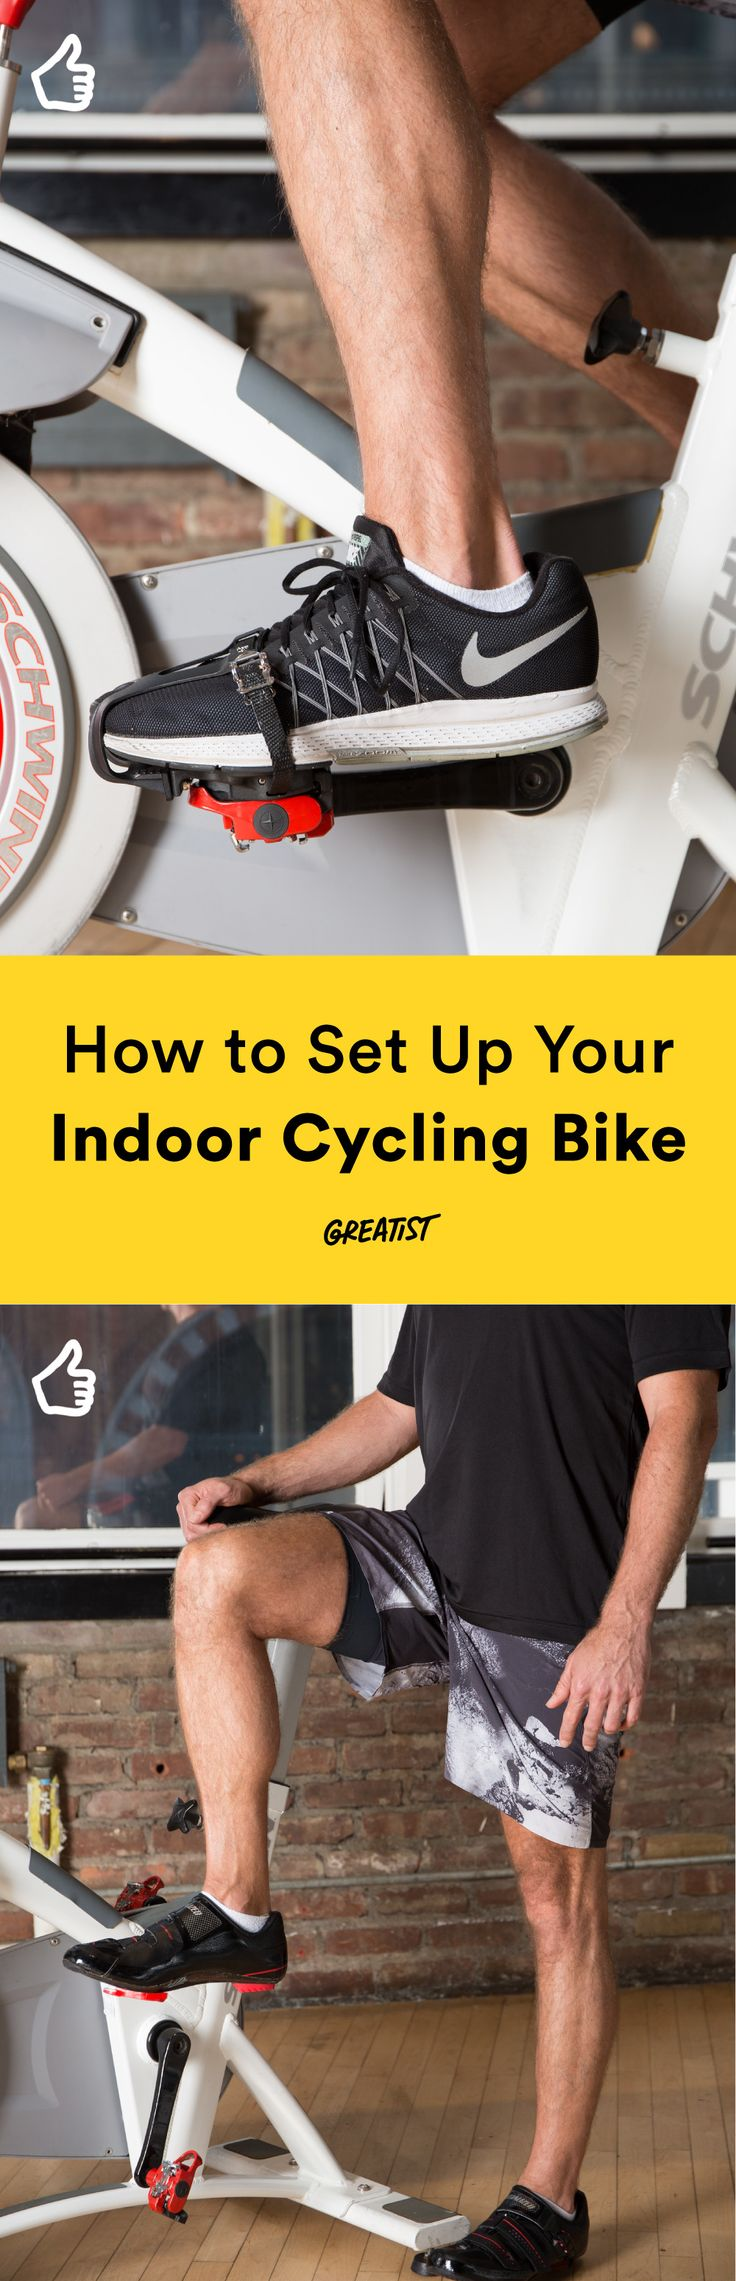 Tour de France, here you come! #indoorcycling #spinning http://greatist.com/move/indoor-cycling-how-to-set-up-your-bike-like-a-pro